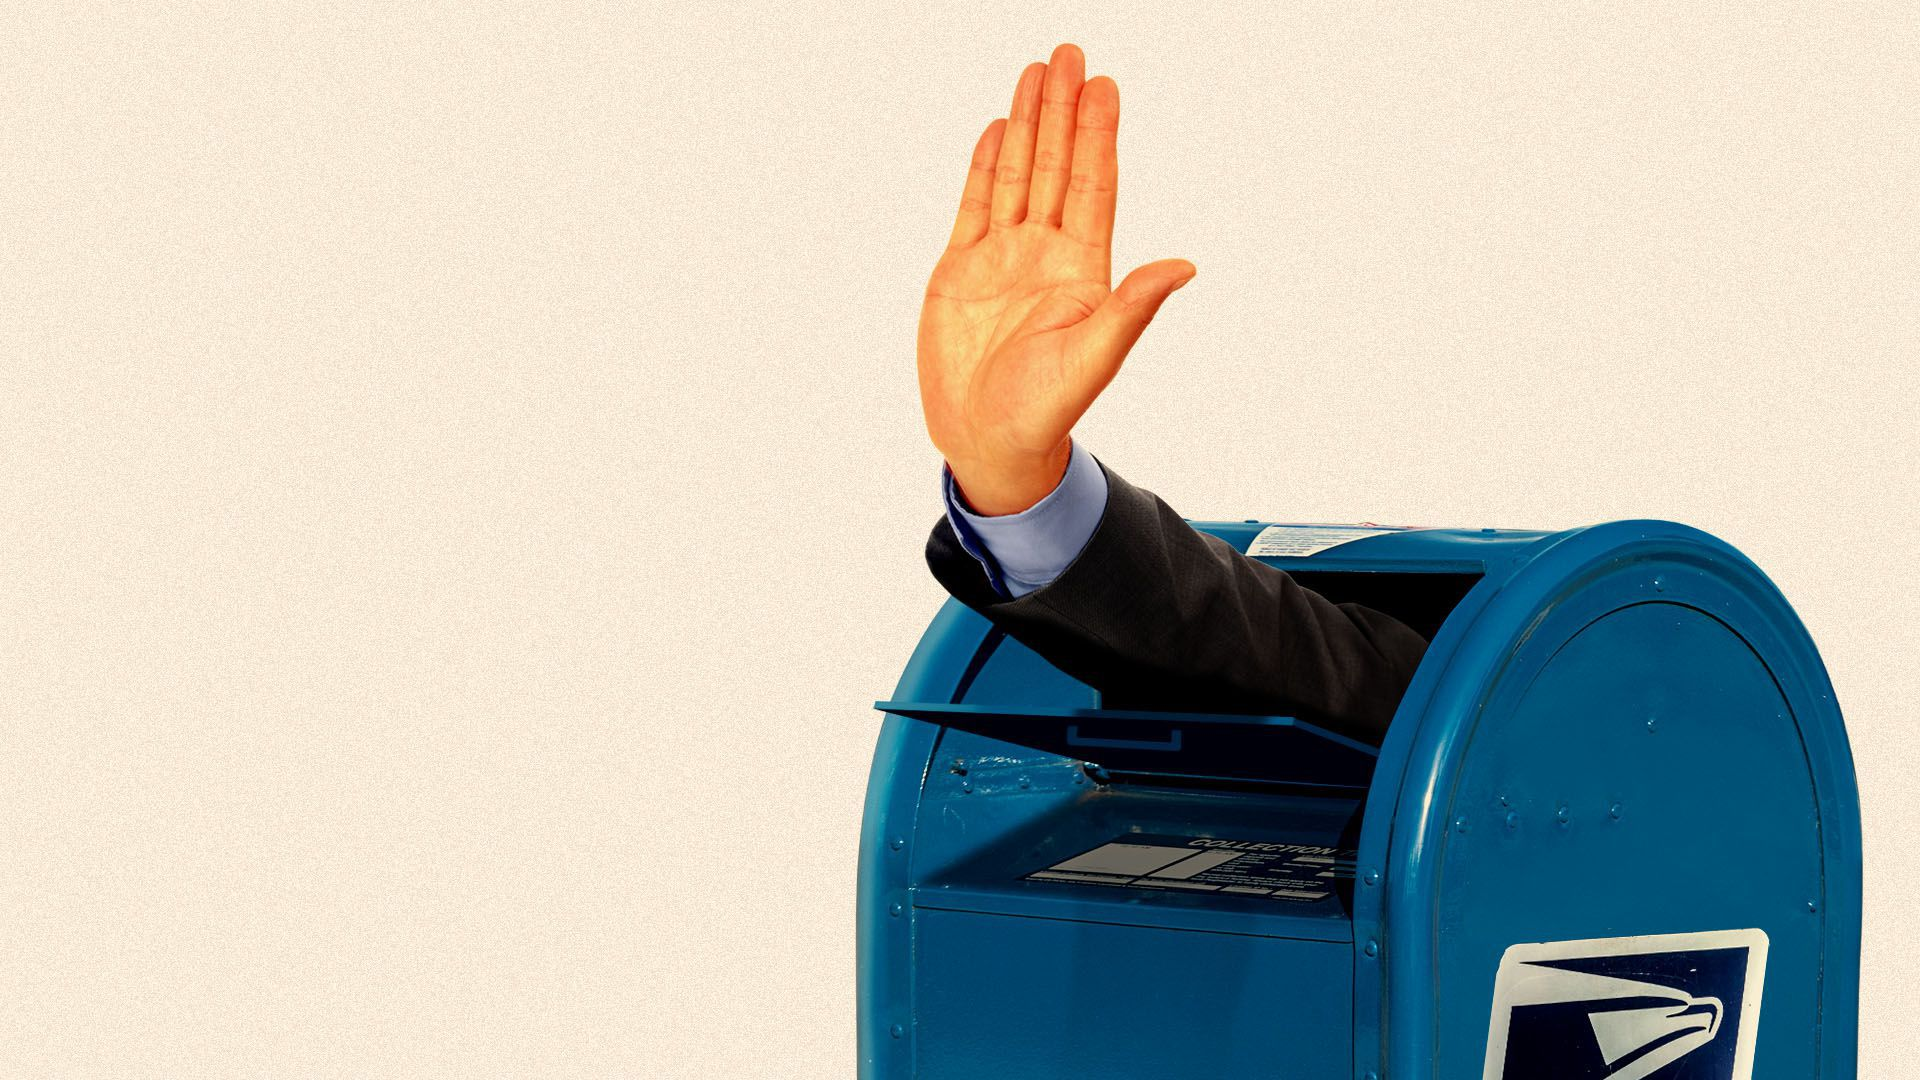 Illustration of a hand making a stopping motion coming out of a USPS mailbox